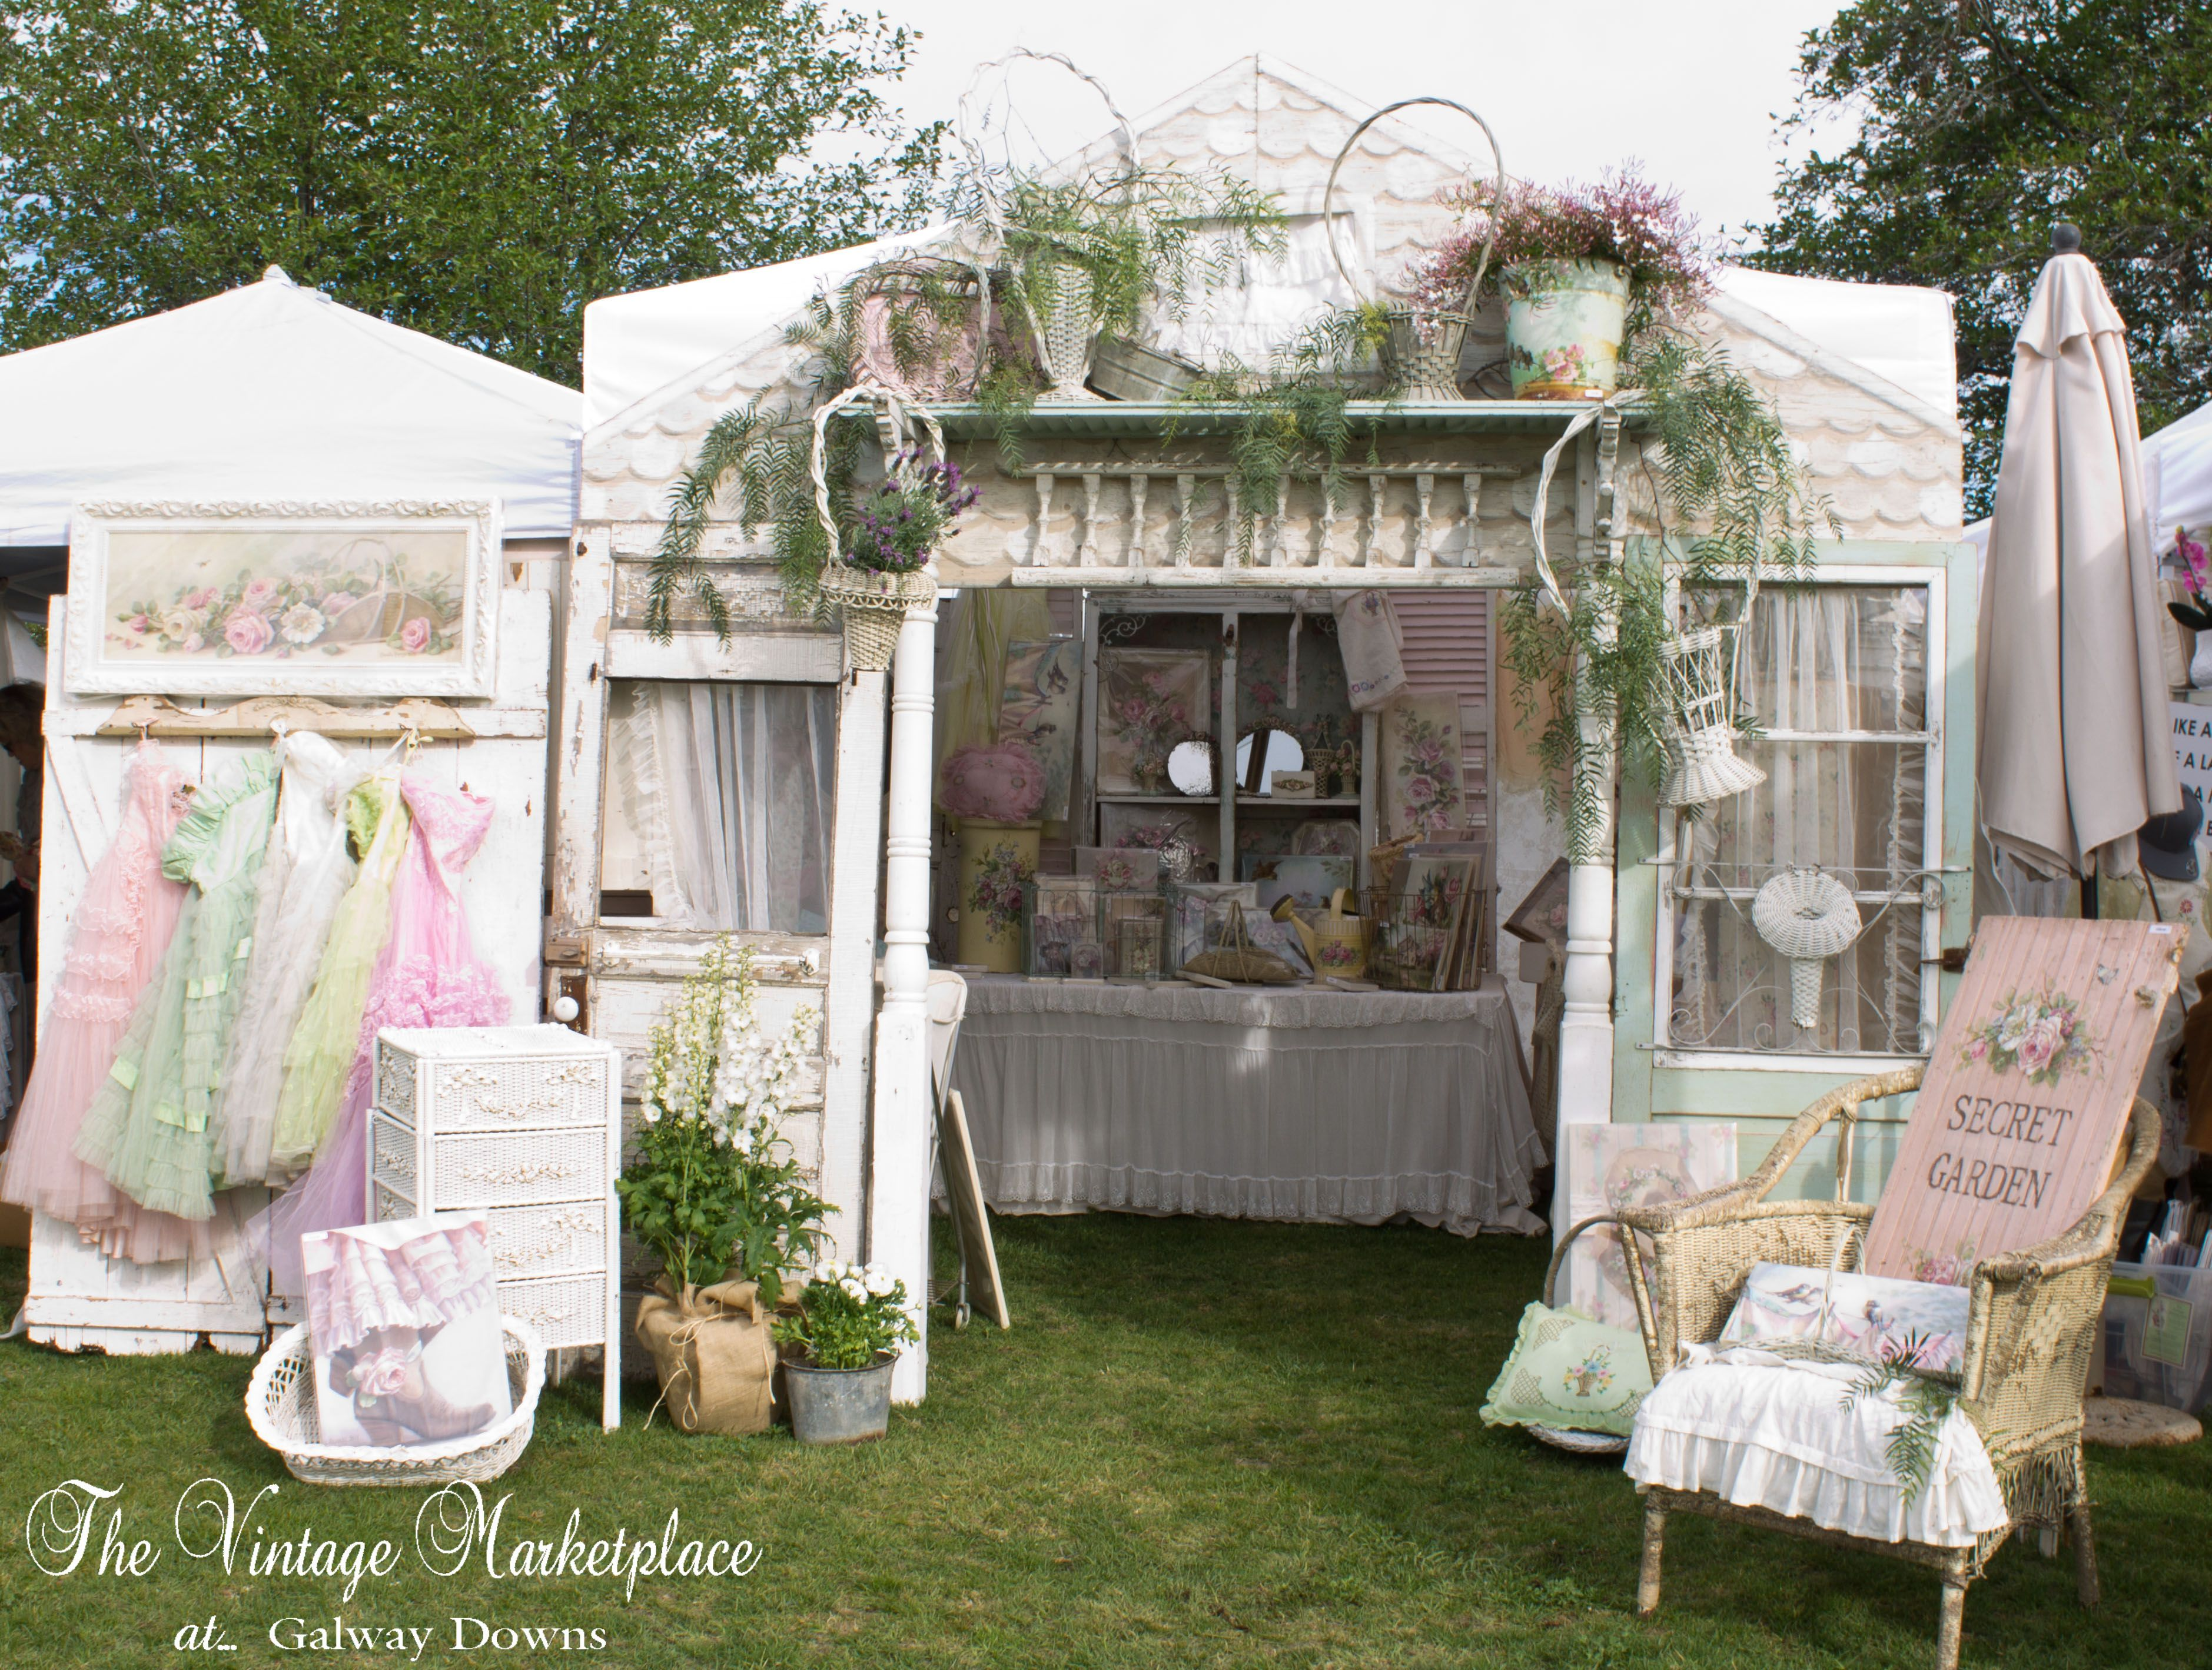 christie repasy designs the vintage marketplace booth display